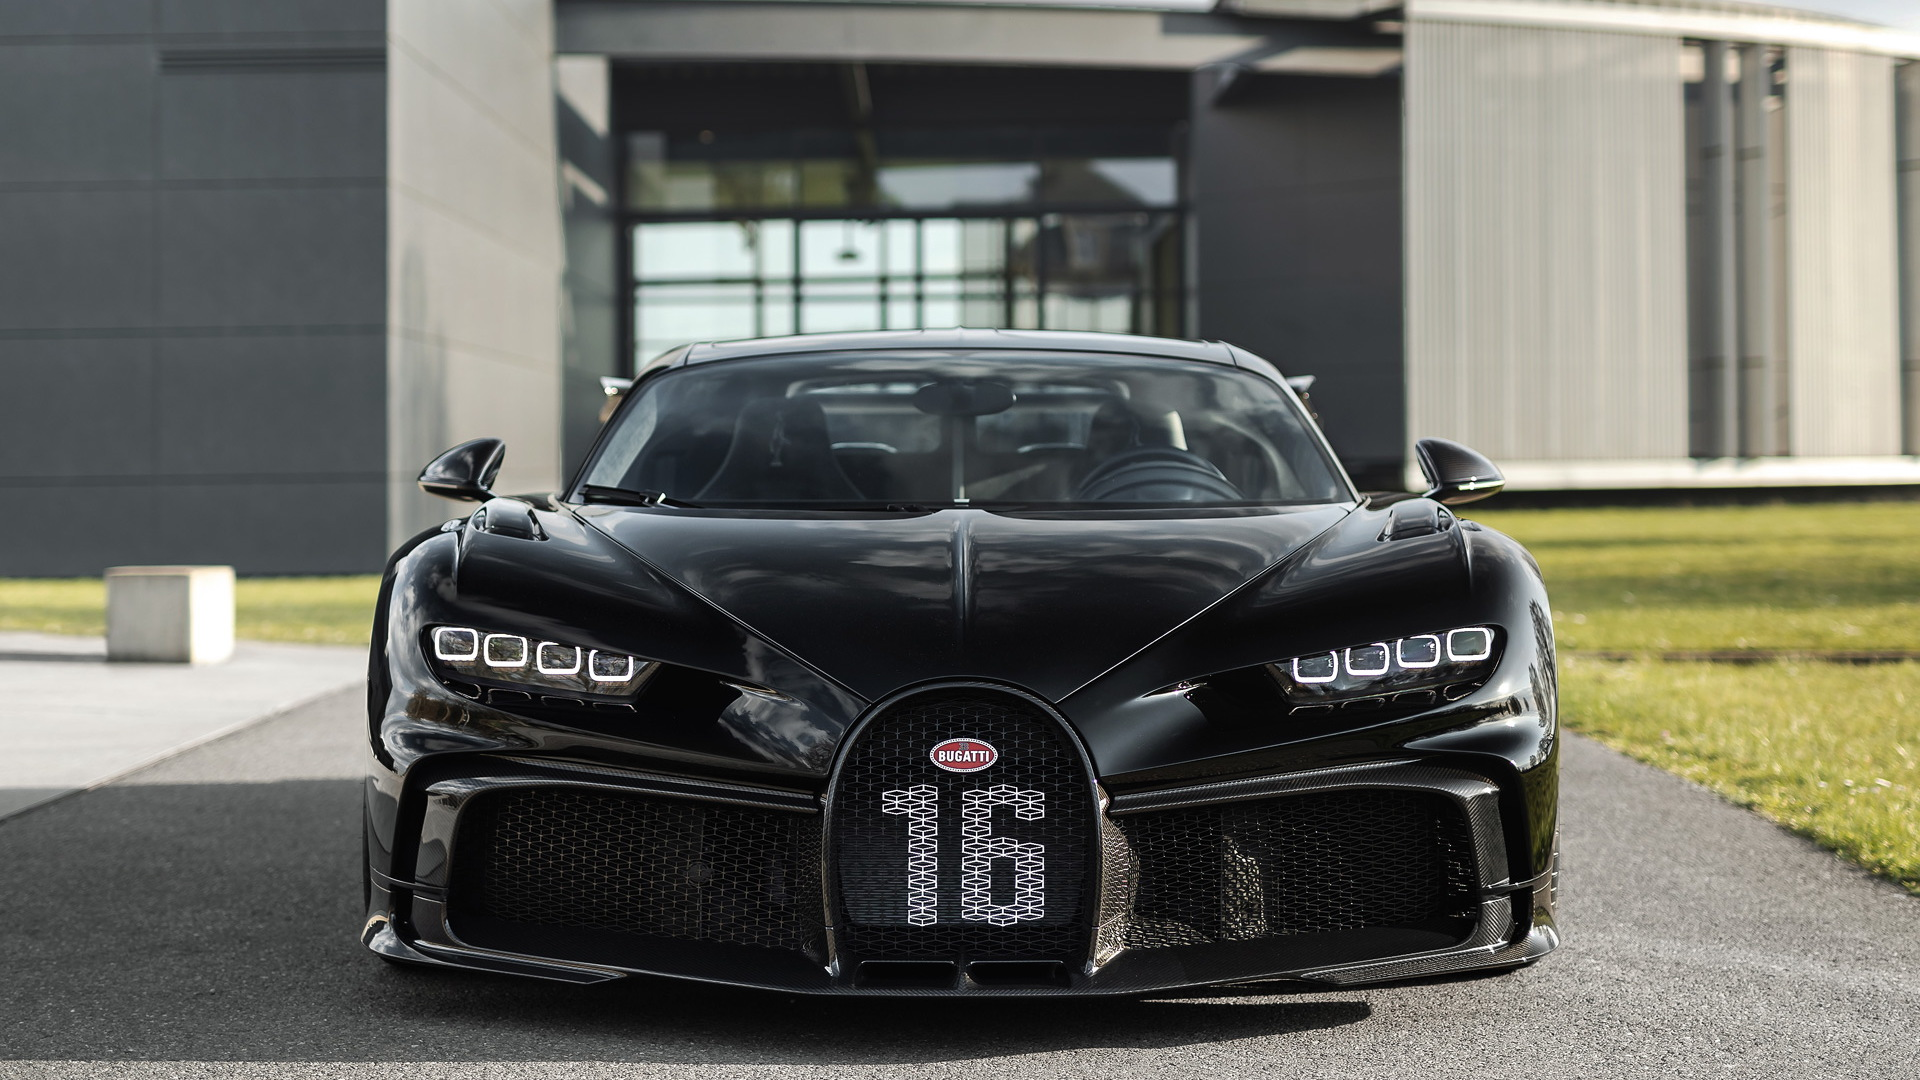 Bugatti's 300th Chiron is a Pur Sport finished in black